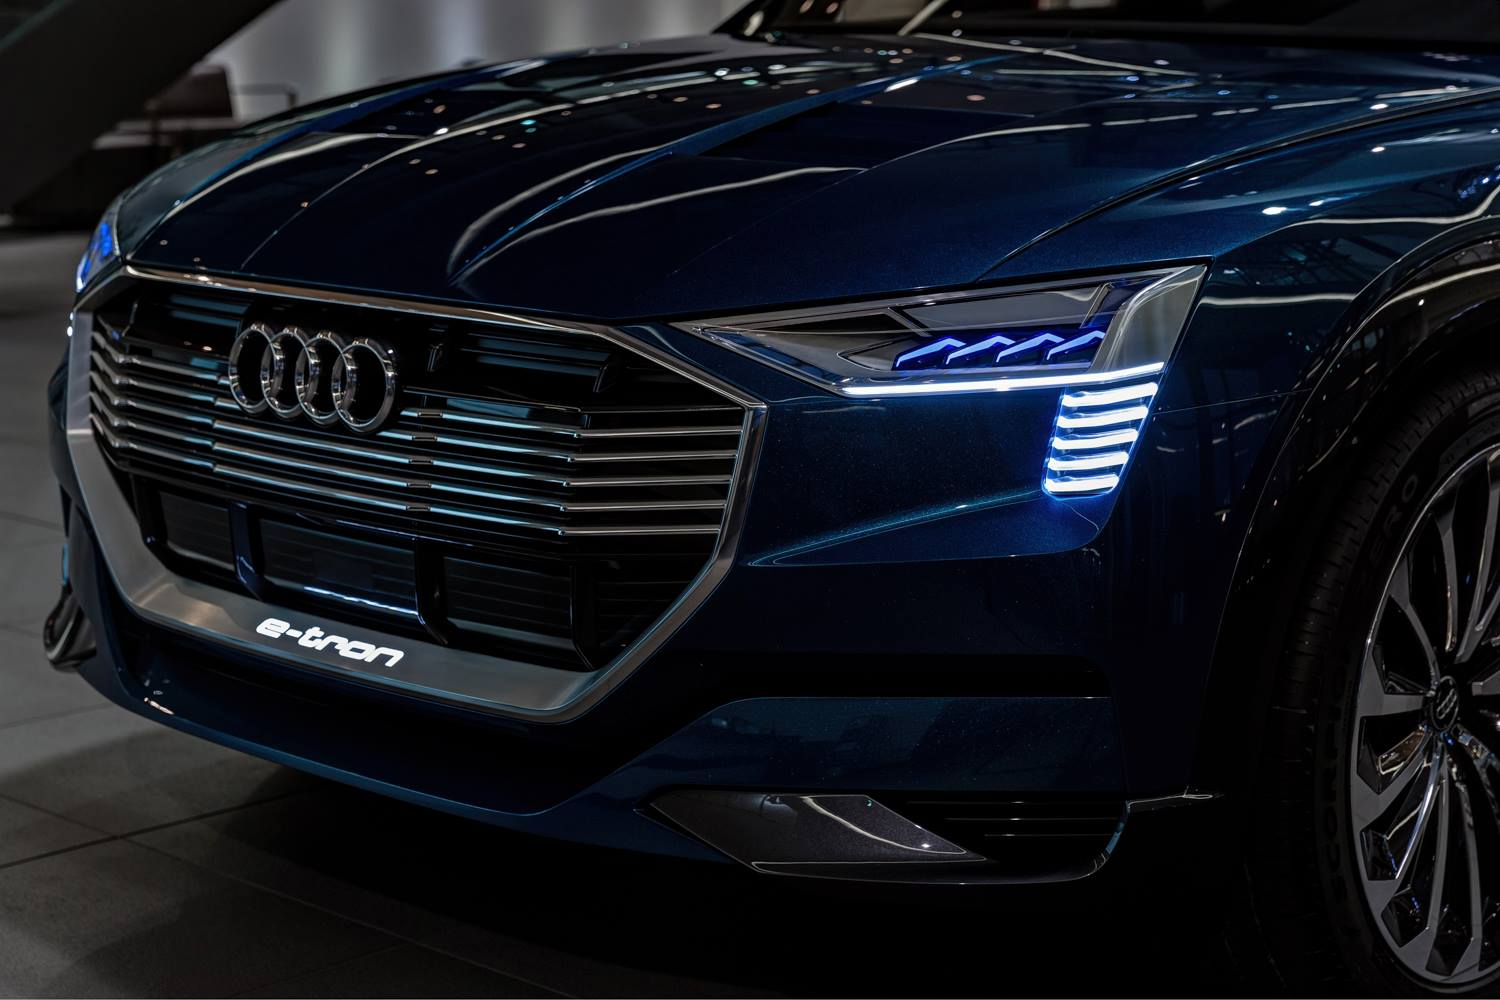 Reservations Open In Norway For The 2018 Audi e-tron Electric SUV - autoevolution